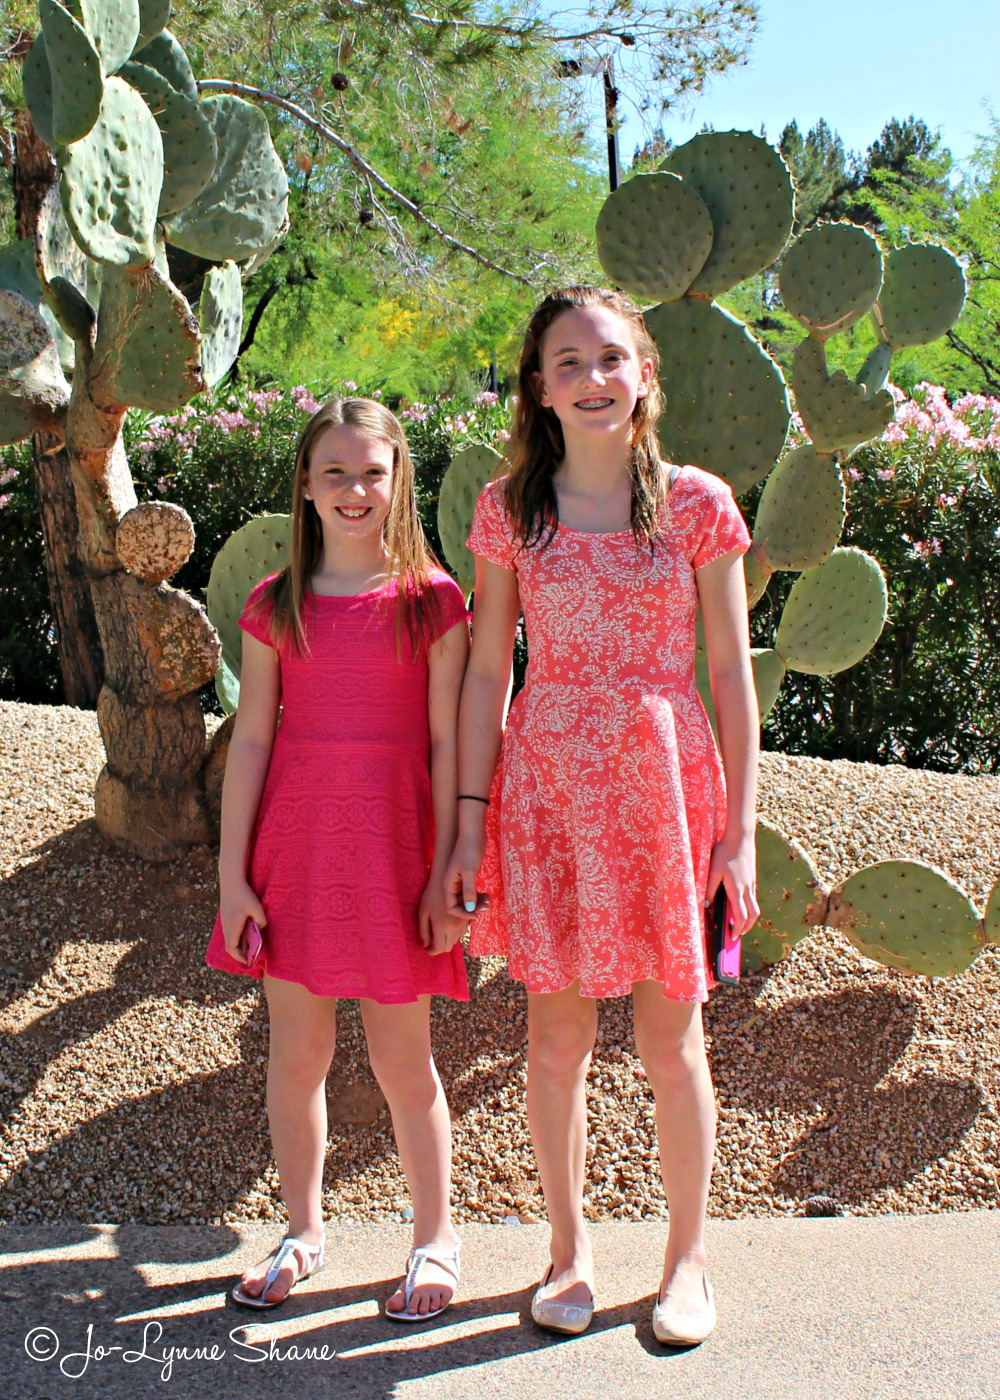 Tween Fashion Trends: Skater Dresses featuring P.S. from Aeropostale